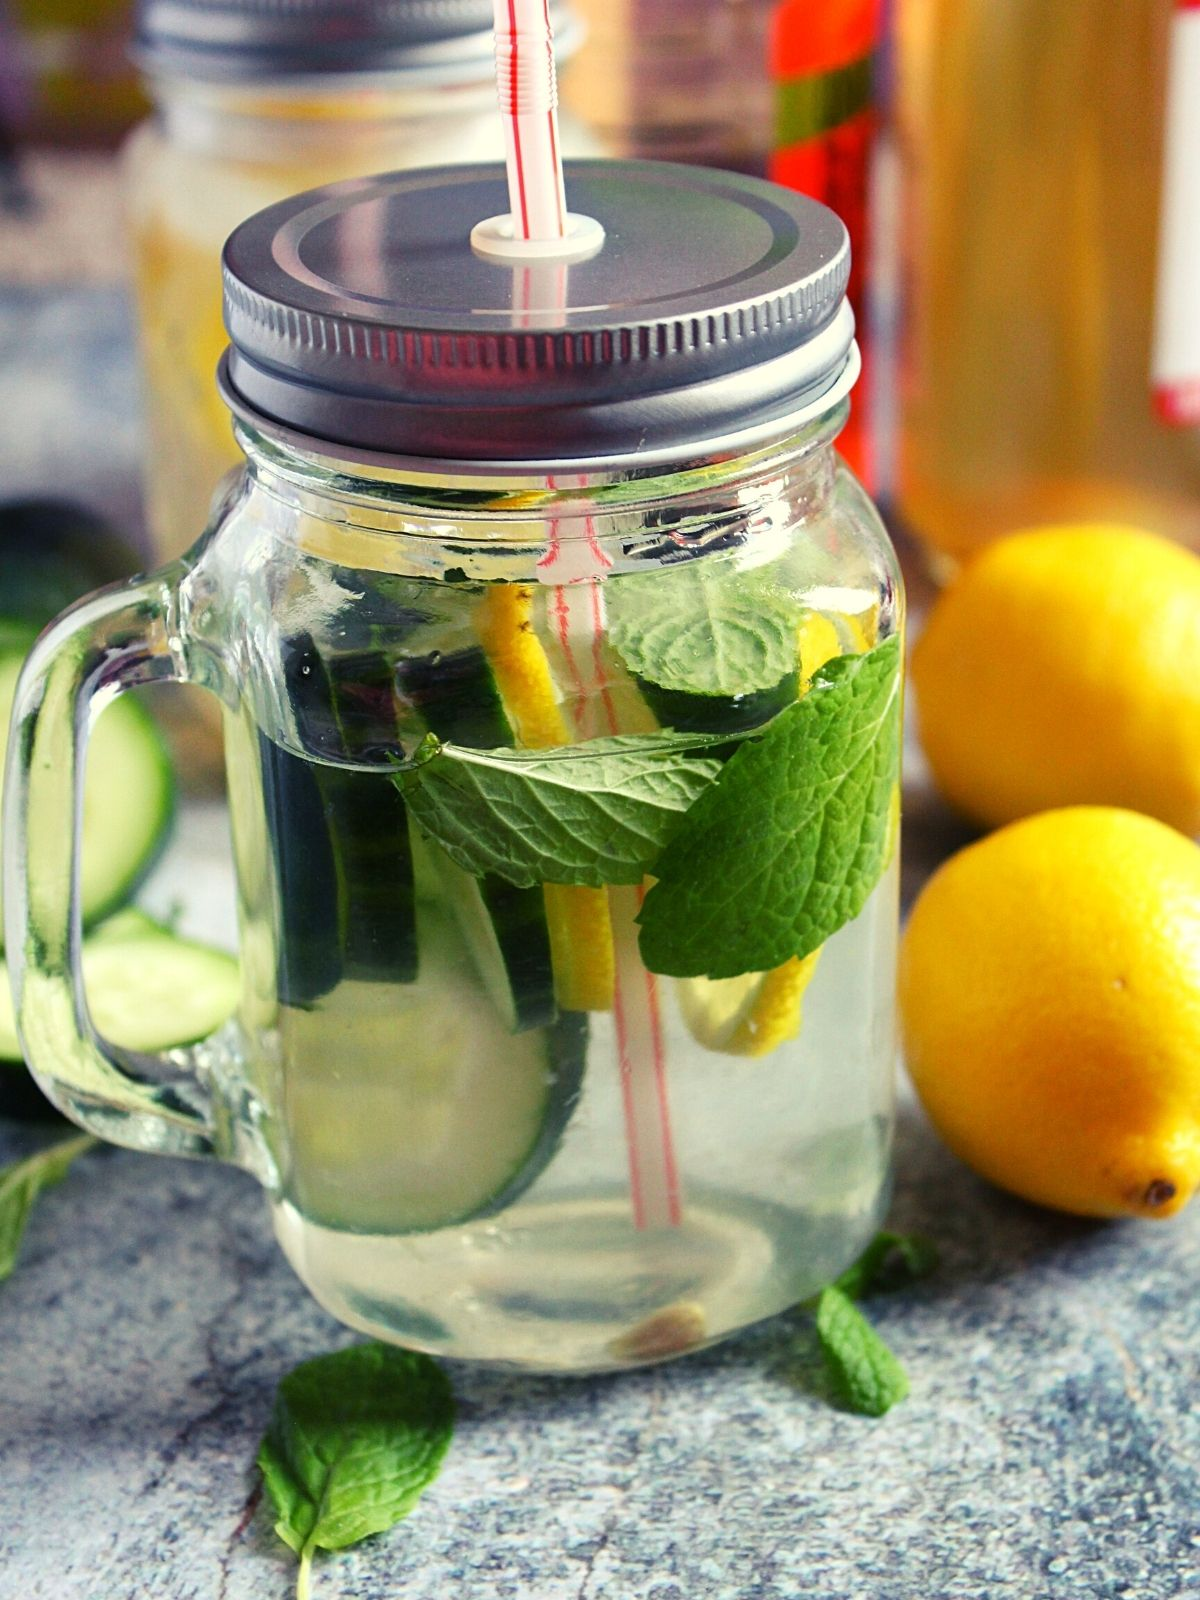 lemon cucumber slices with mint leaves infused in water in a jar with lid